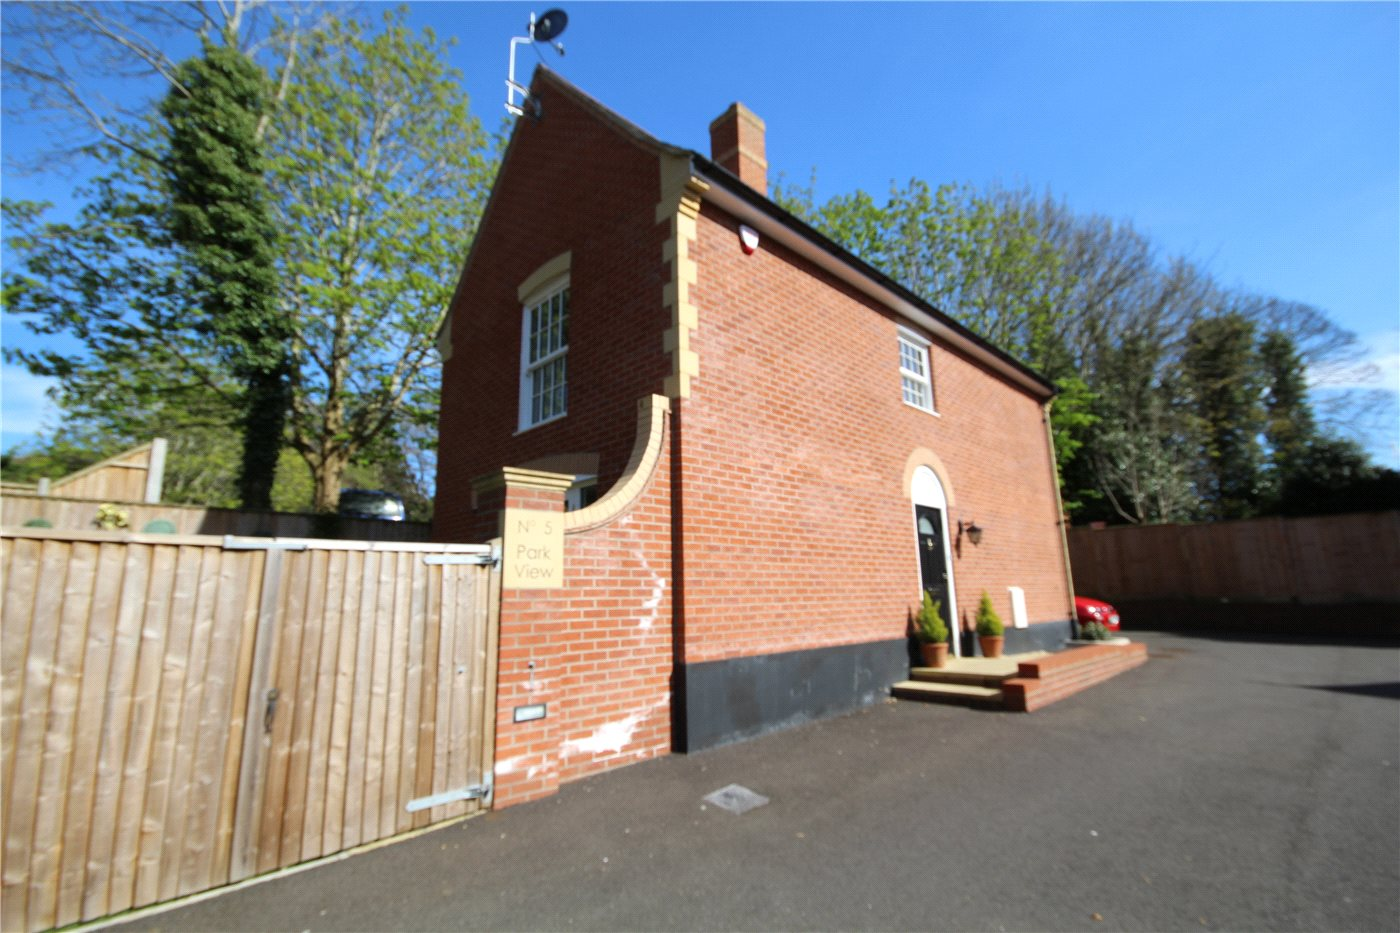 3 Bedrooms Detached House for sale in Church Road, Lower Parkstone, Poole, BH14